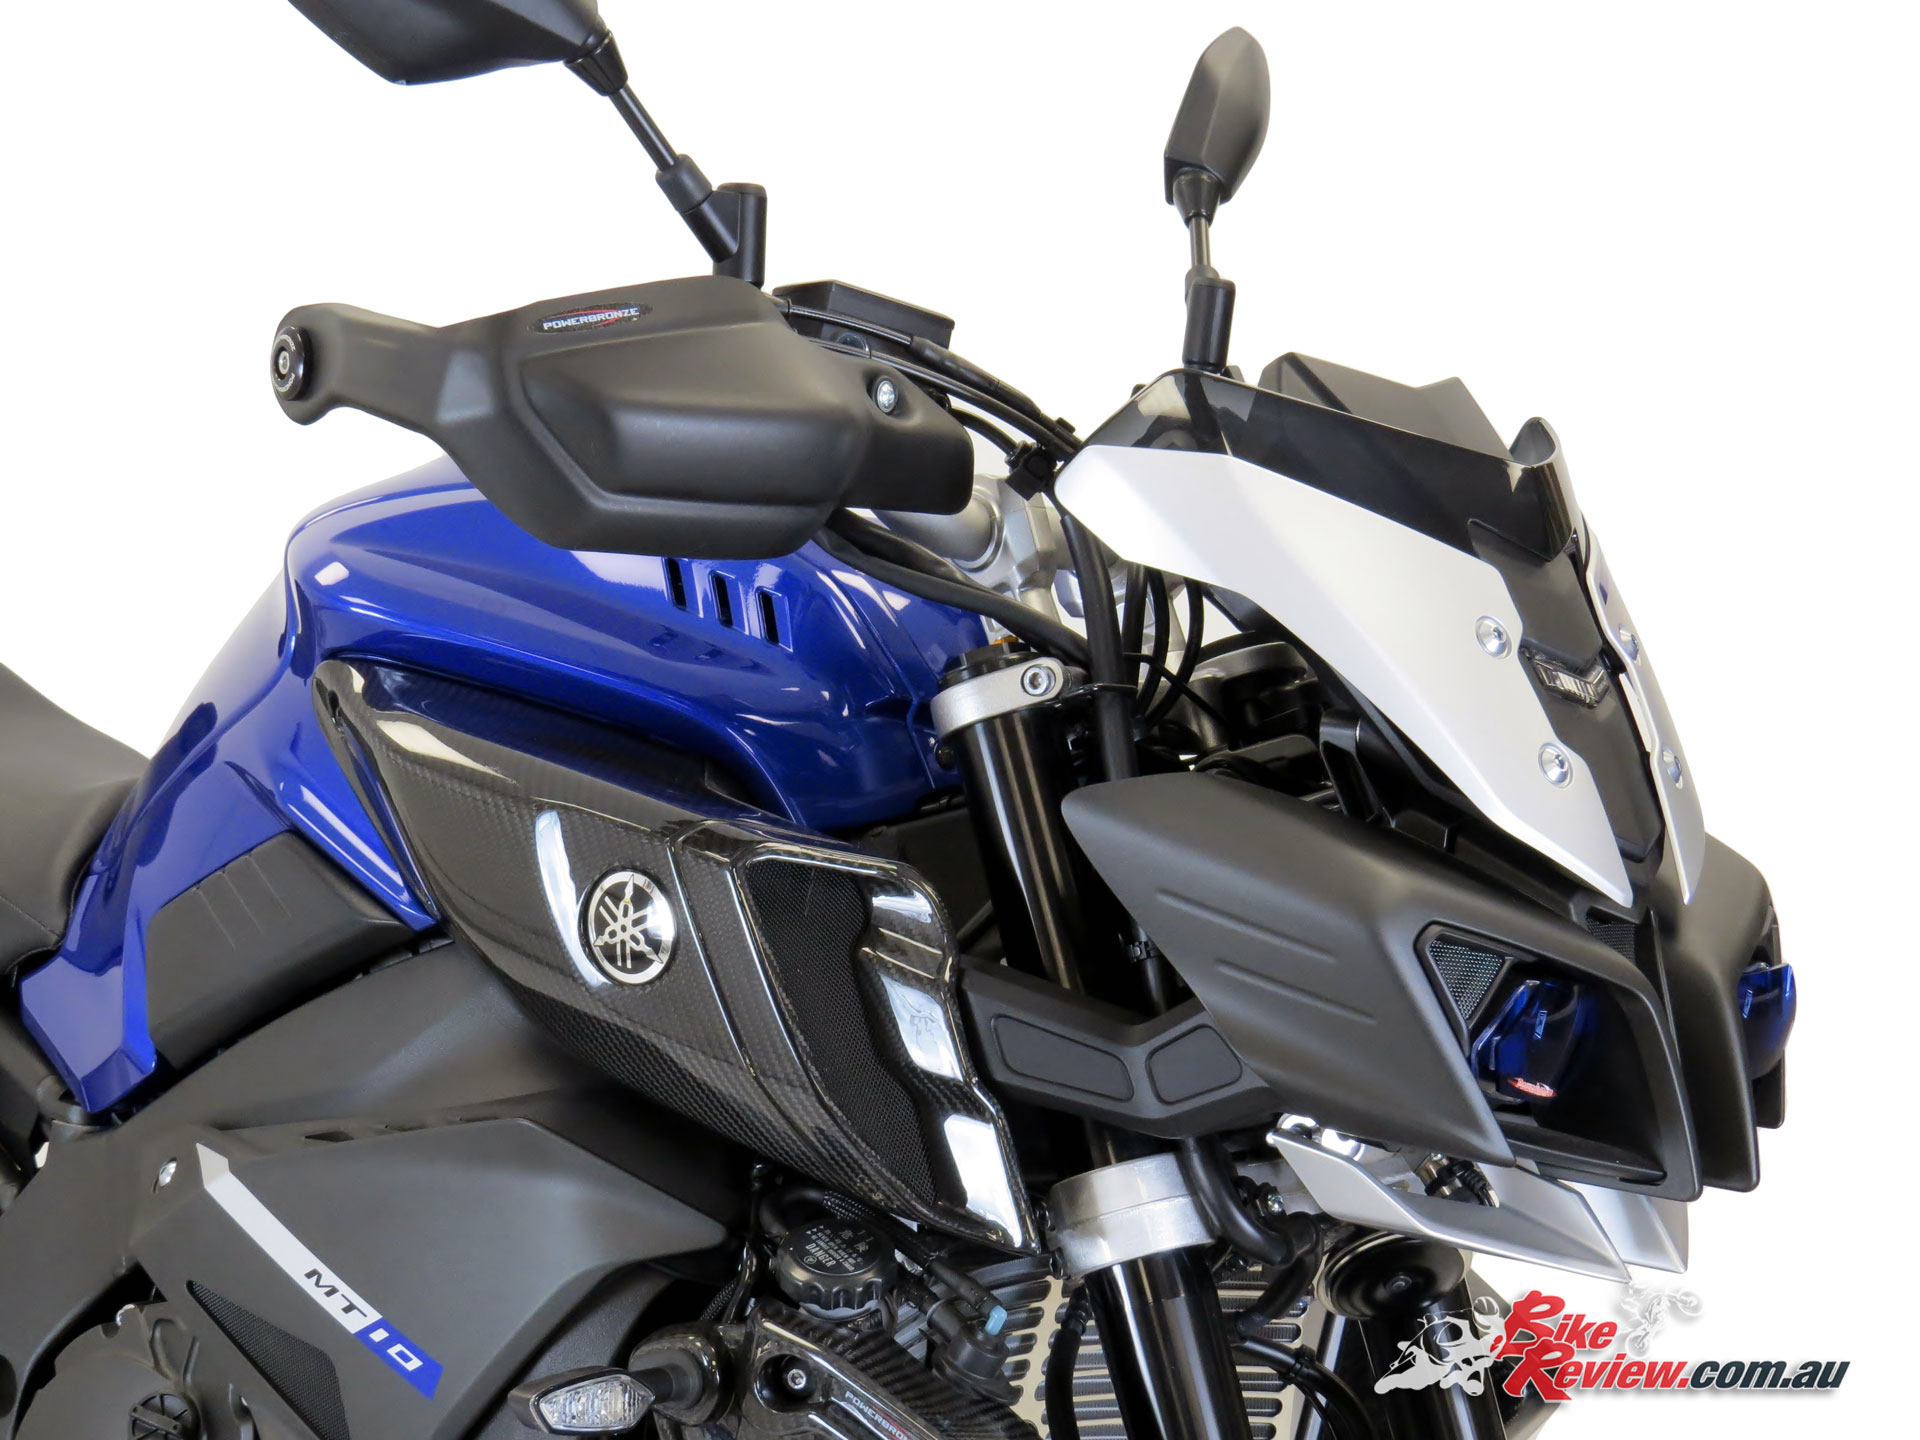 New Product Powerbronze Hand Guards Bike Review